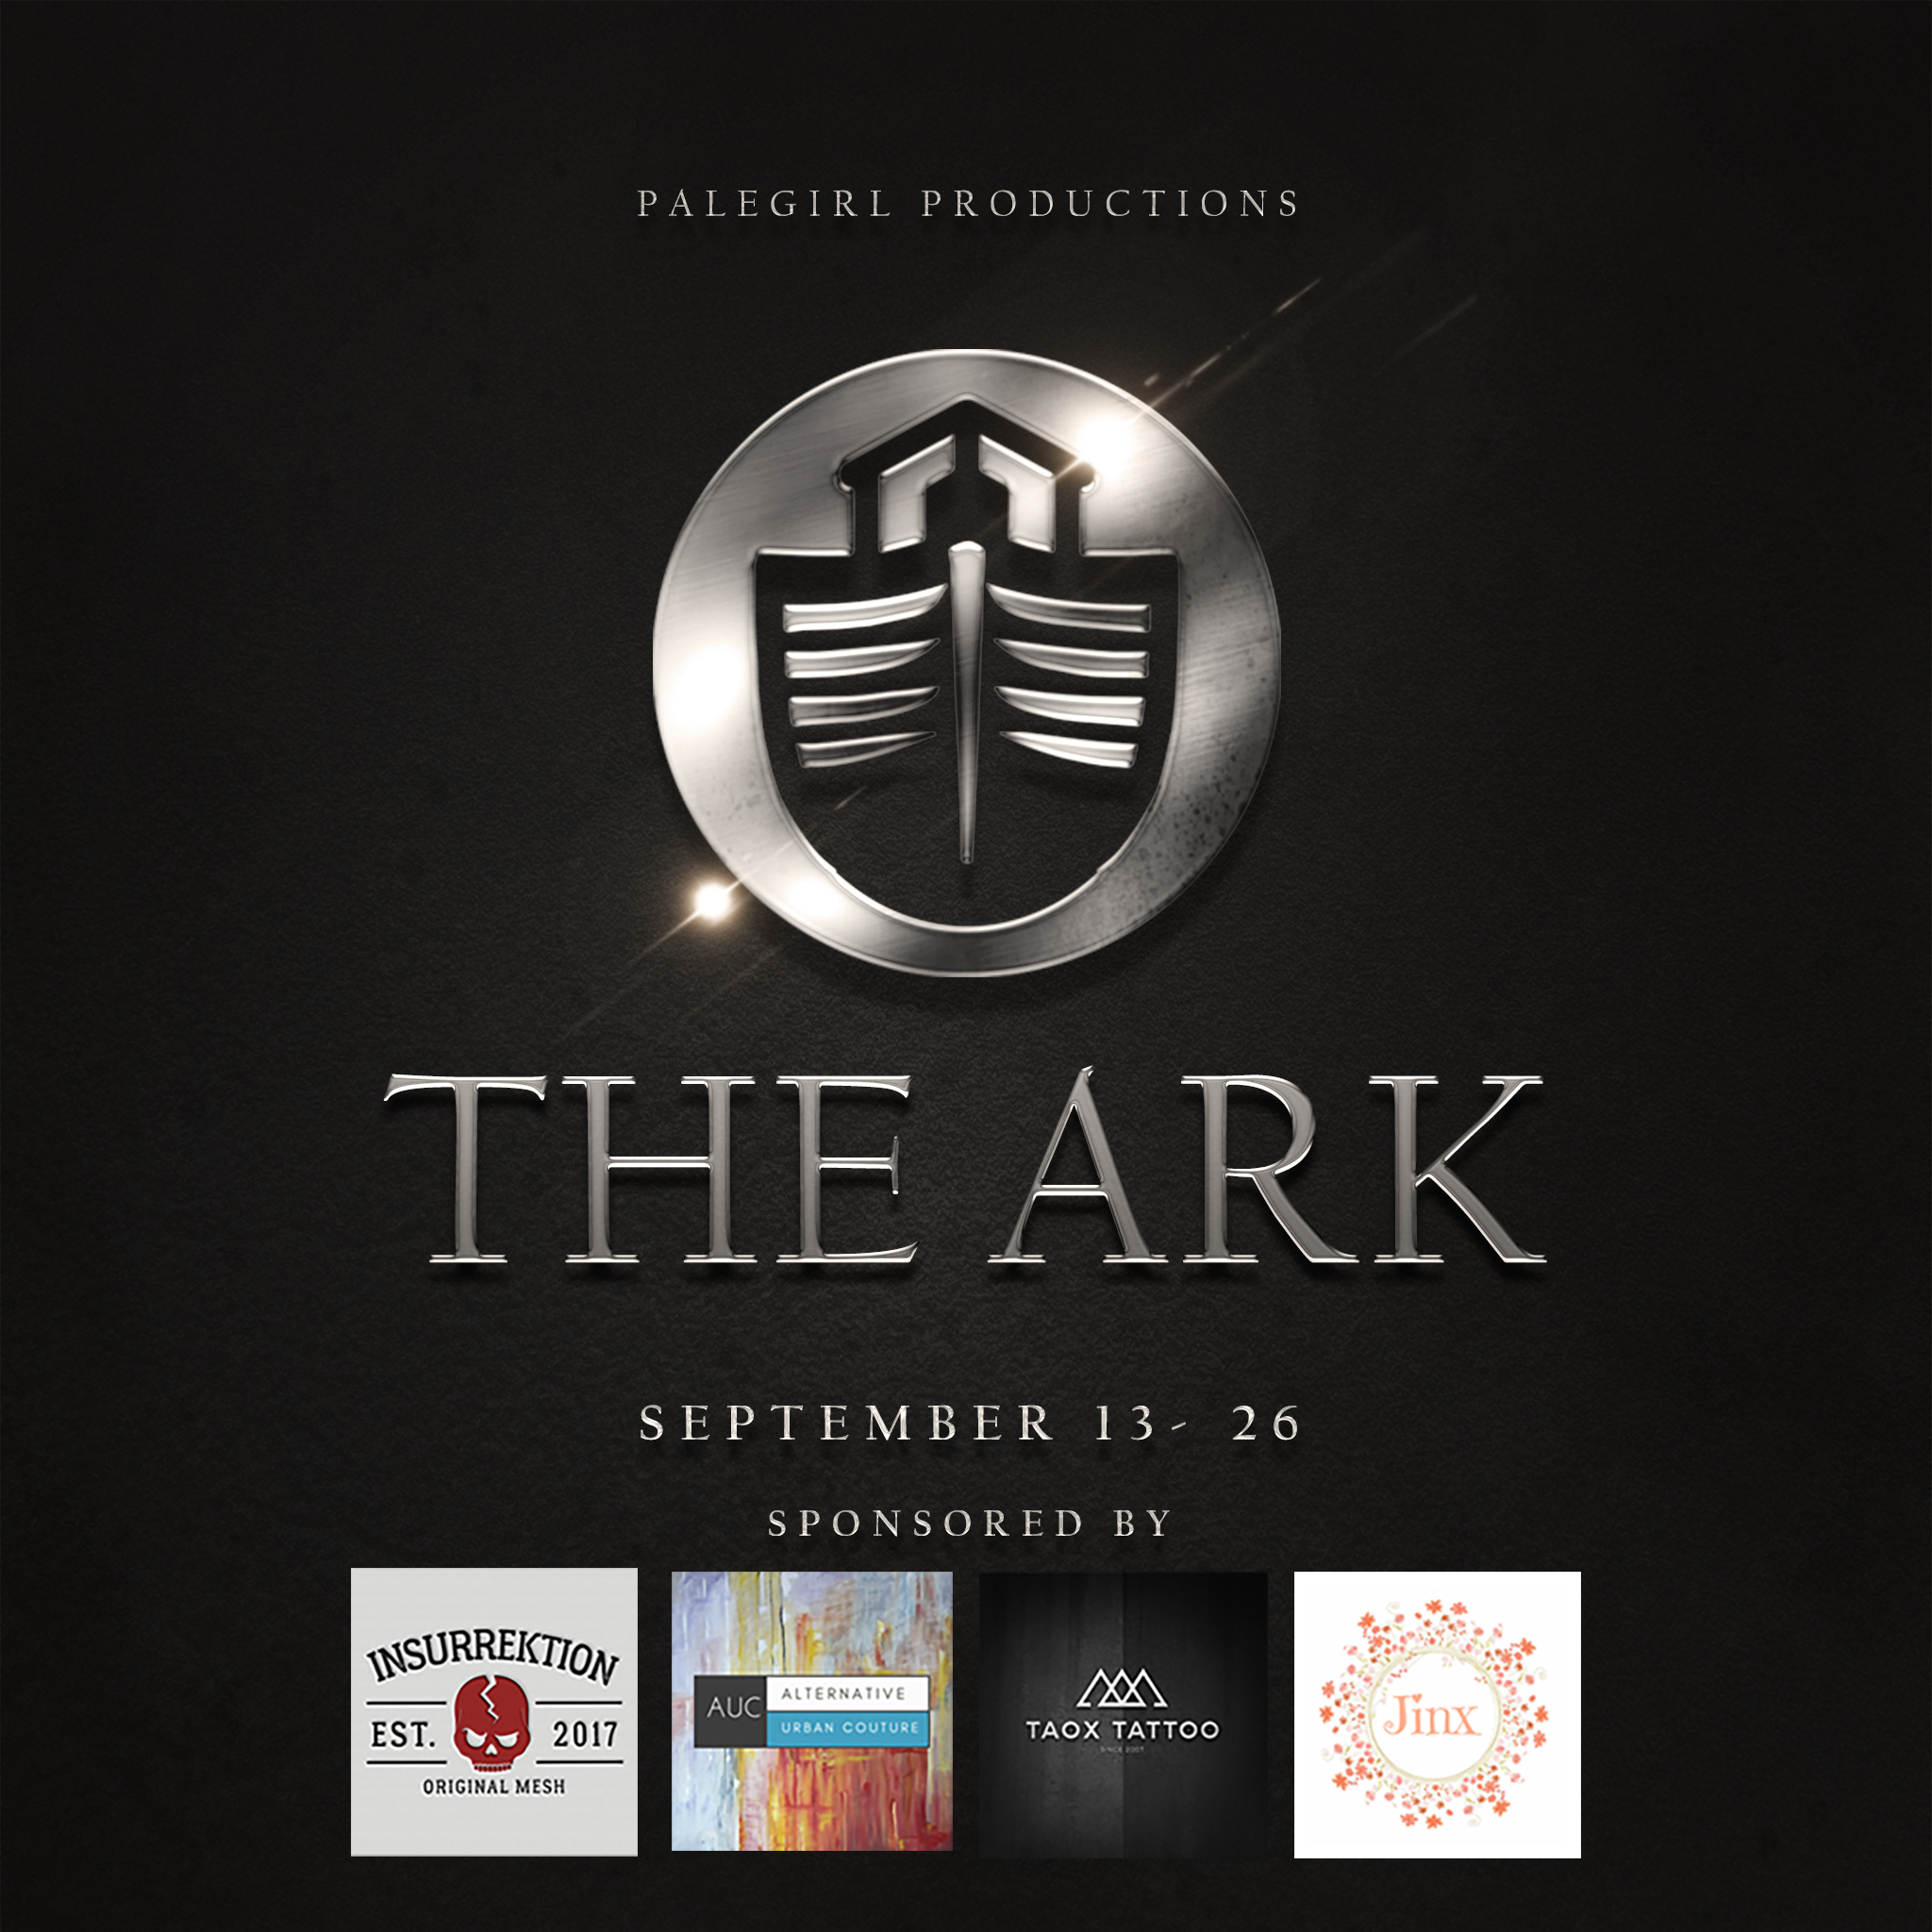 the-ark-with-sponsors-2048